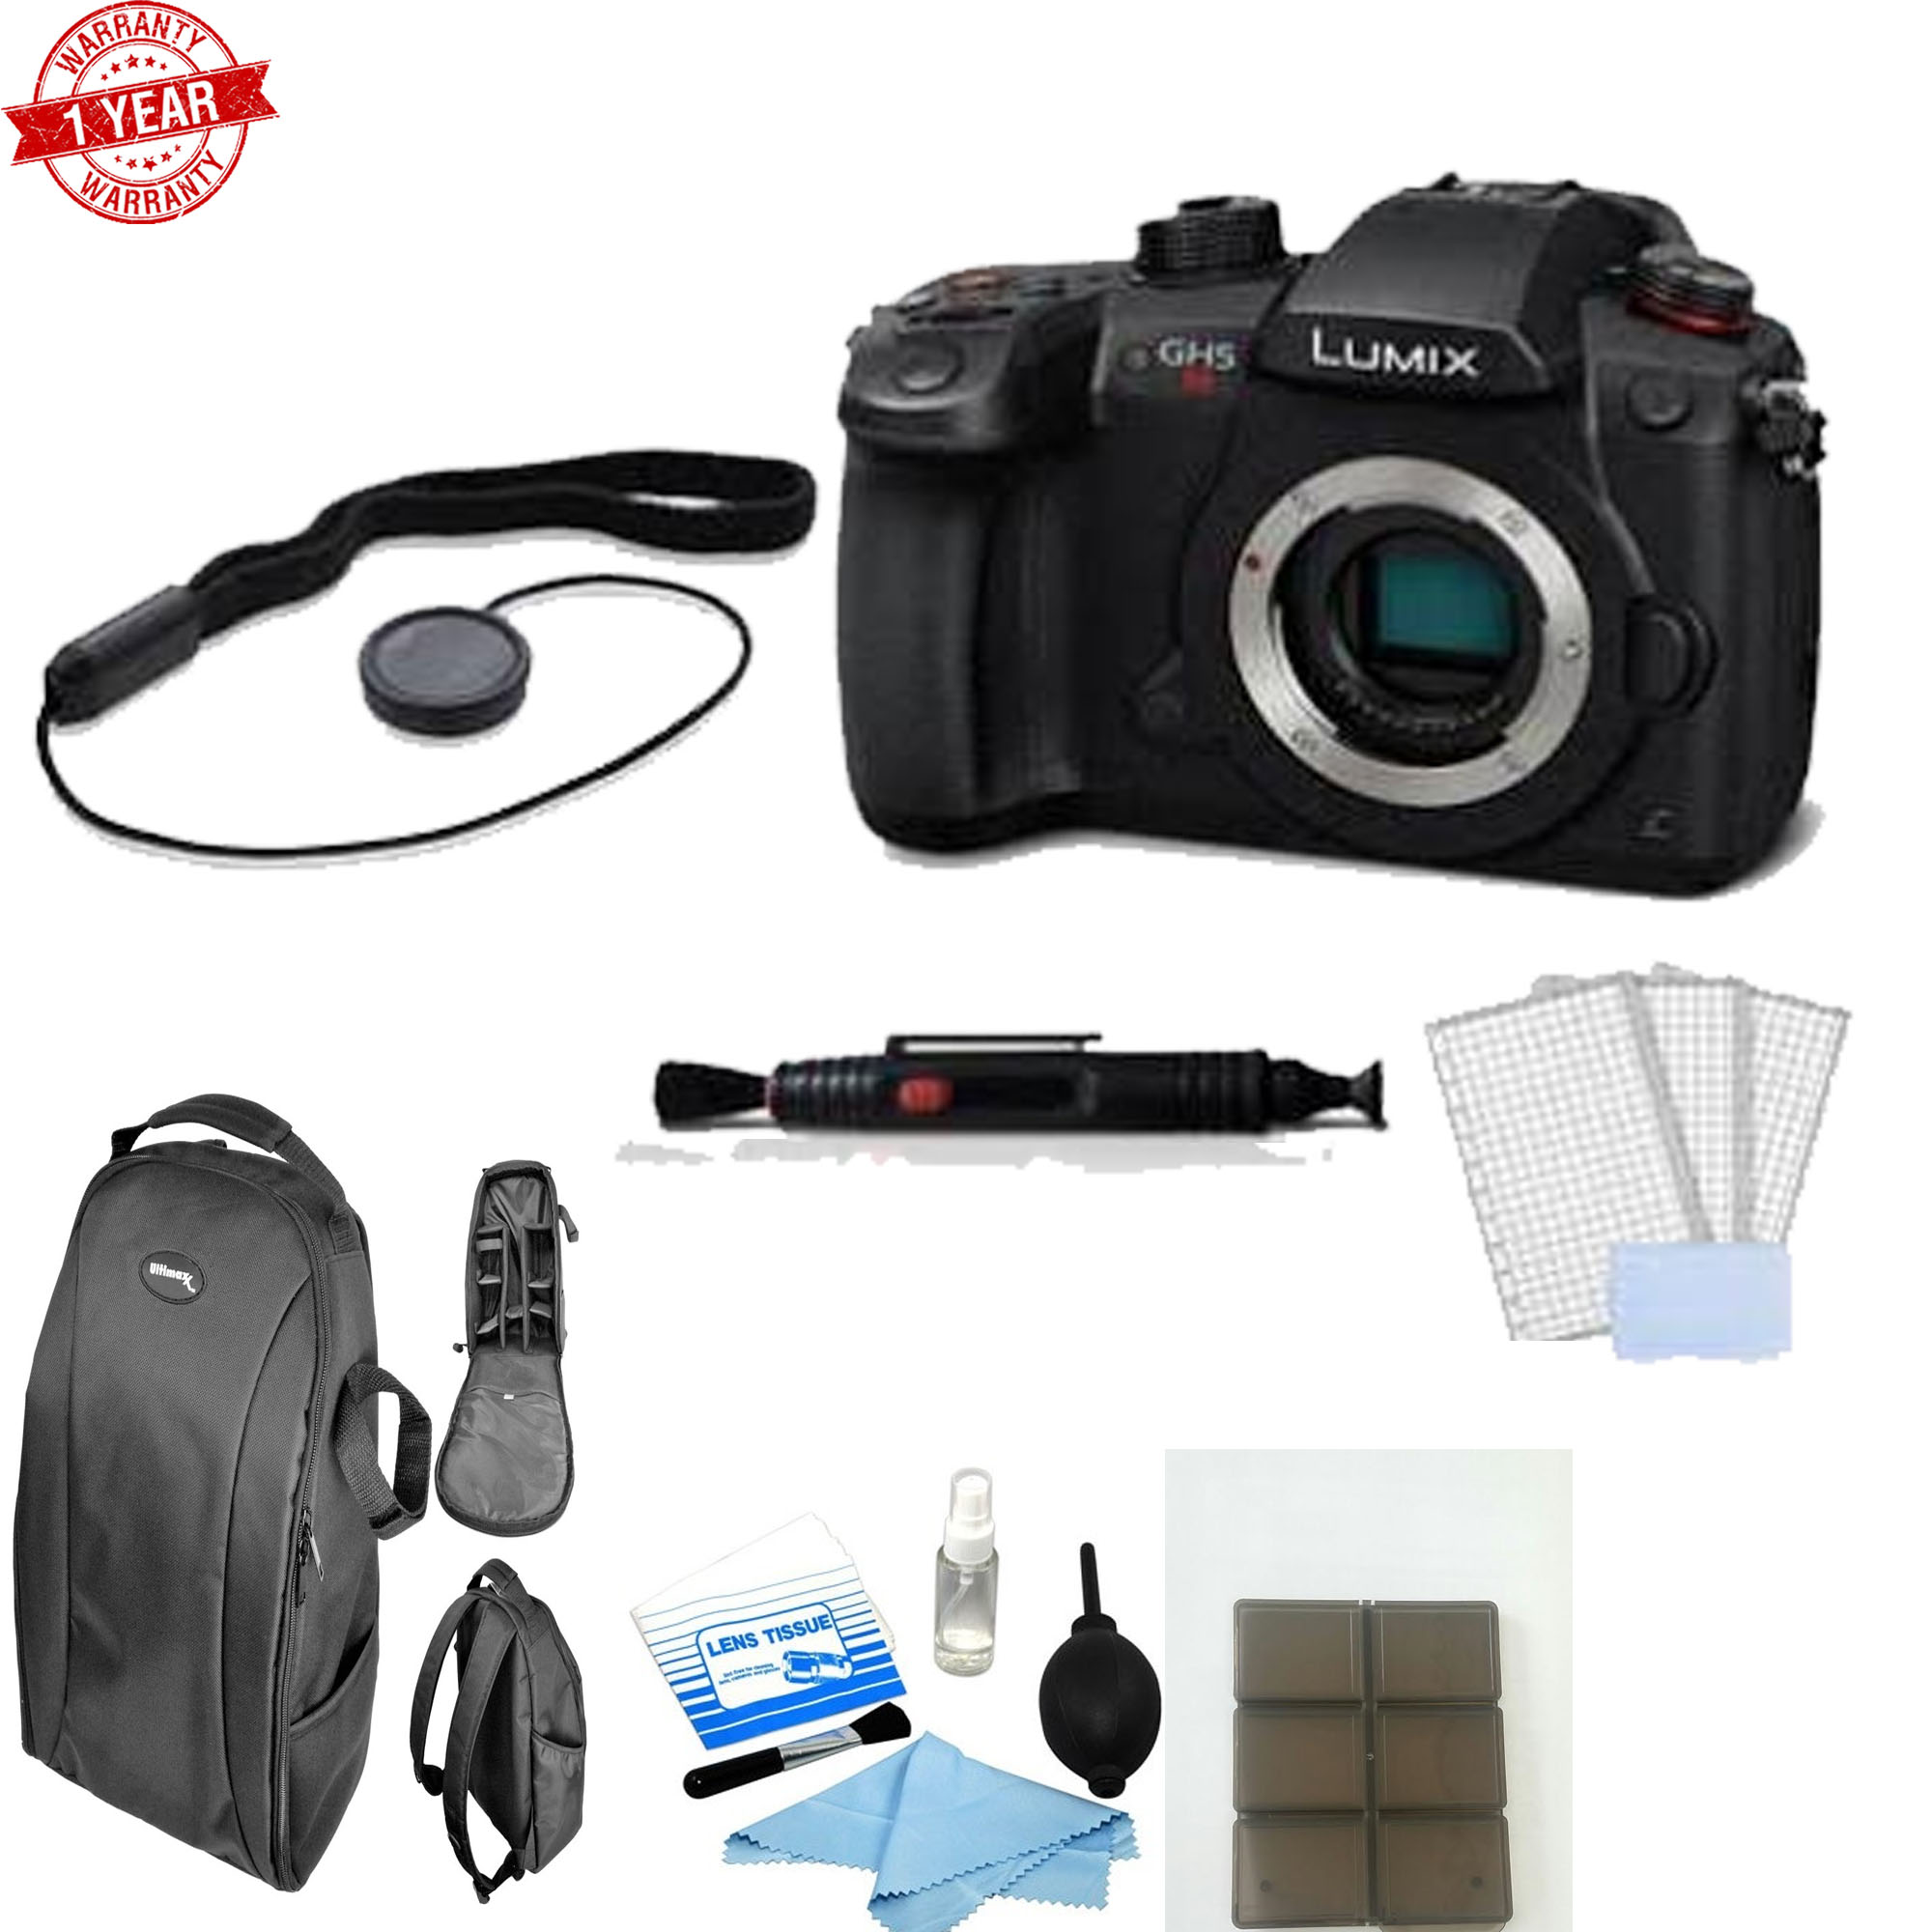 Panasonic Lumix DC-GH5S Mirrorless Micro Four Thirds Digital Camera with Additional Accessories - image 1 de 1